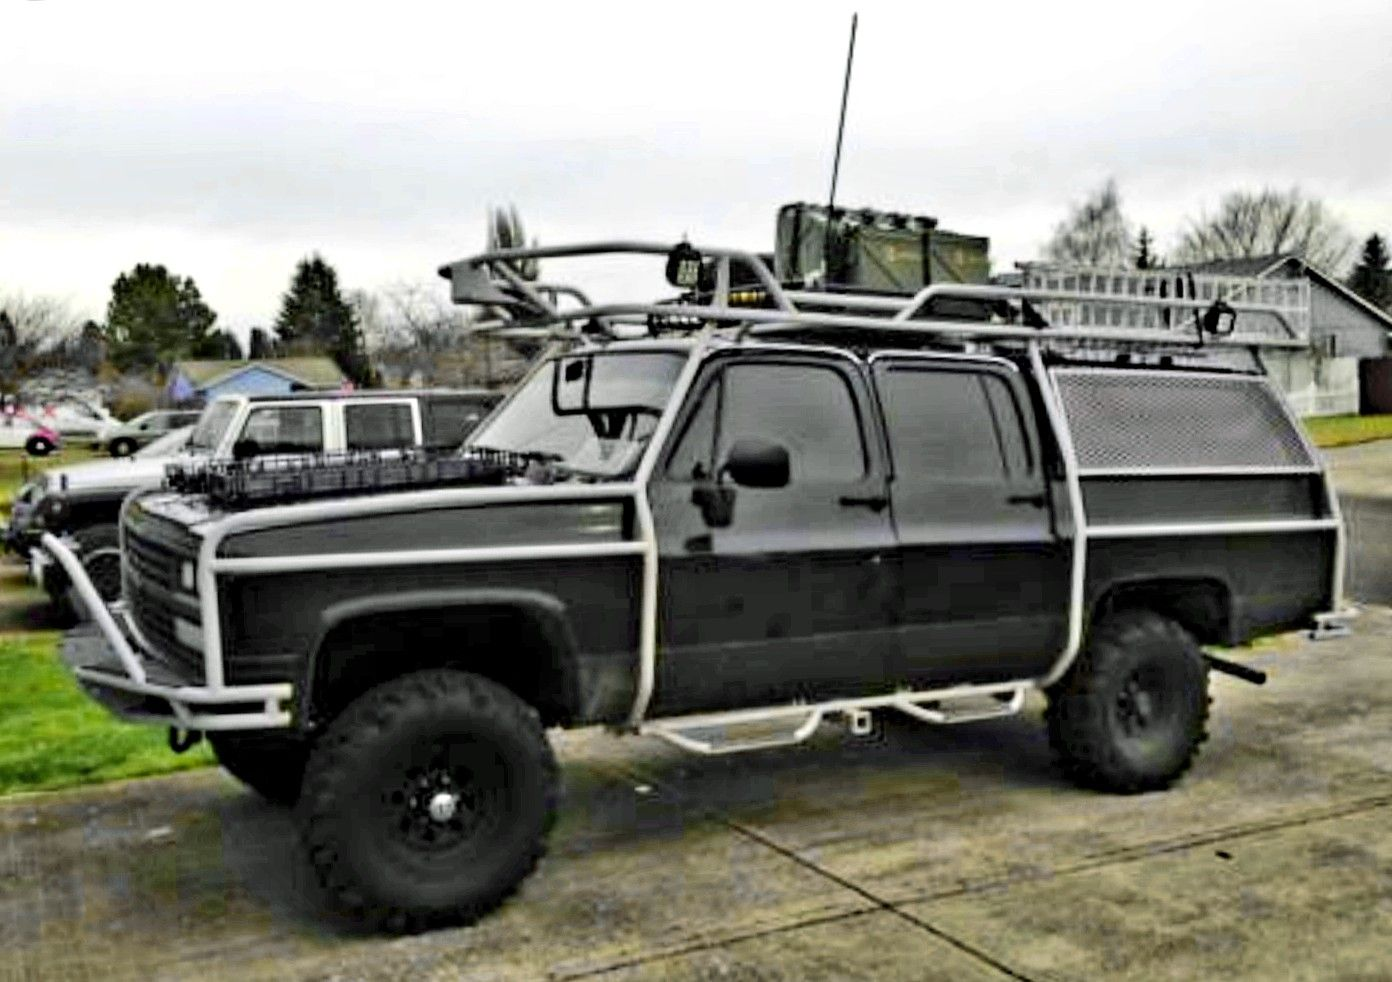 1990 Chevy Suburban 4x4 Exoskeleton Chevy Suburban Chevy Trucks Overland Vehicles